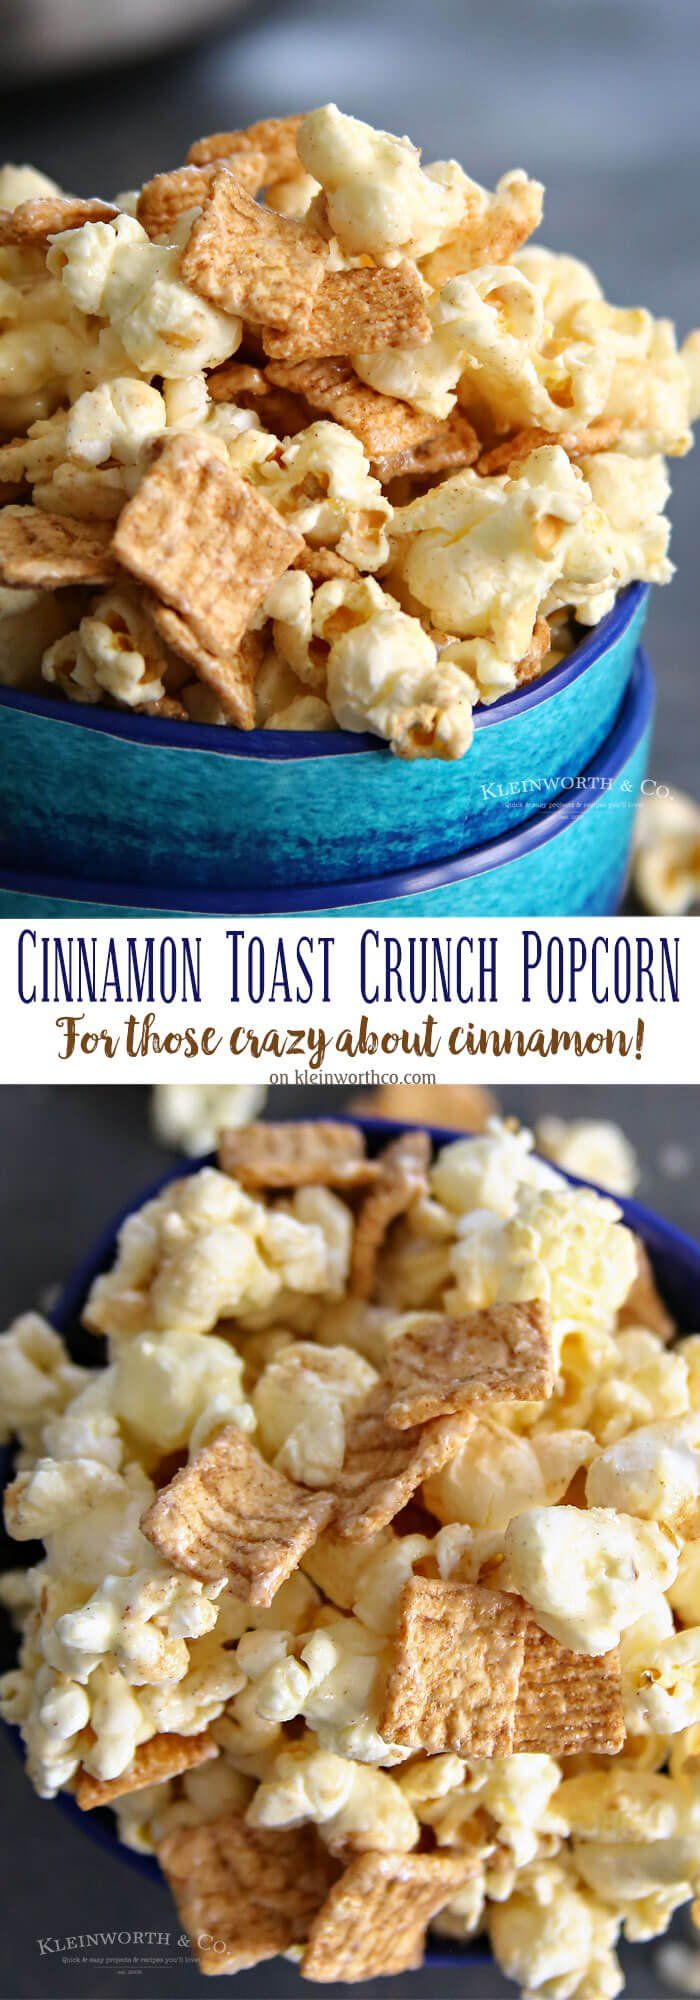 Cinnamon Toast Crunch Popcorn - Kleinworth & Co